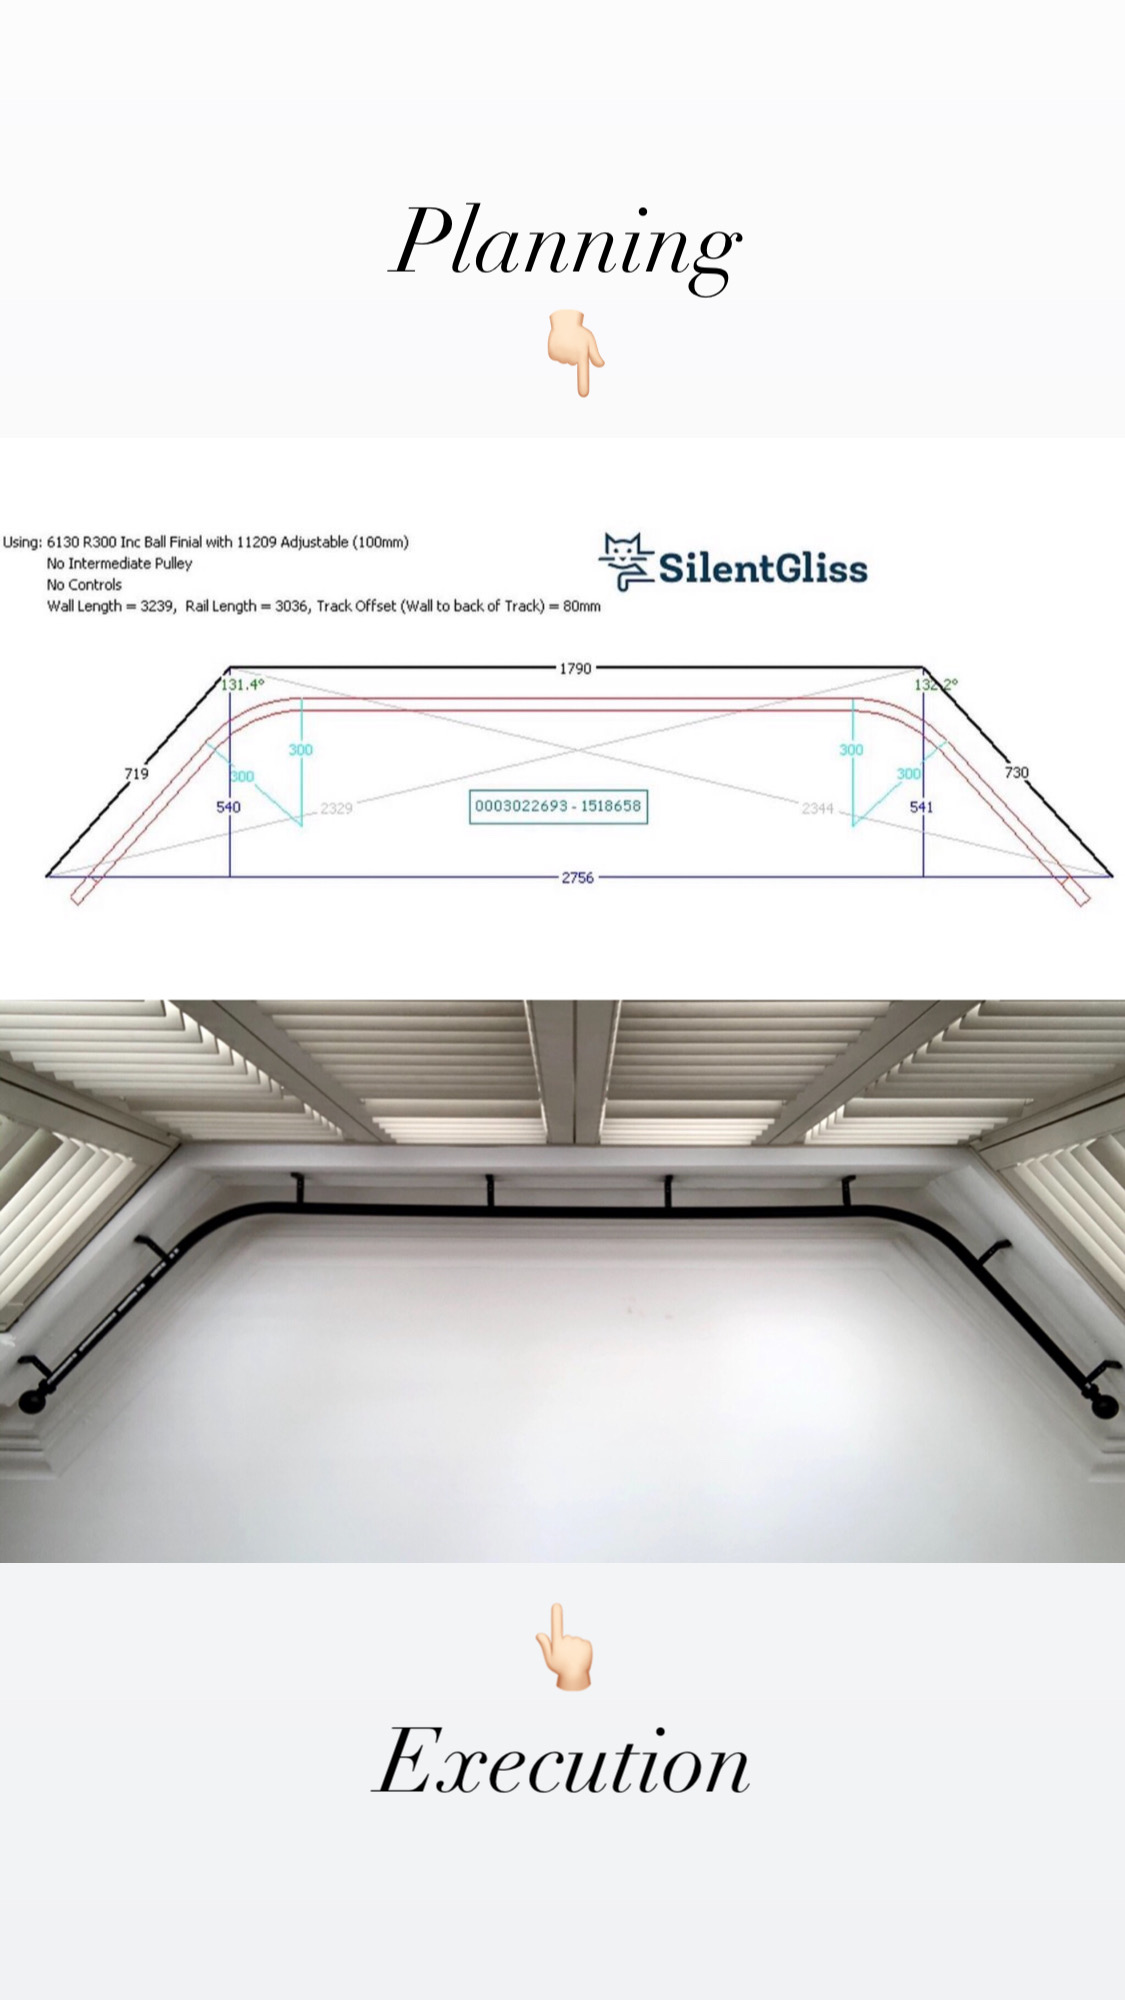 Silent Gliss 6130 Metropole from Planning to Execution